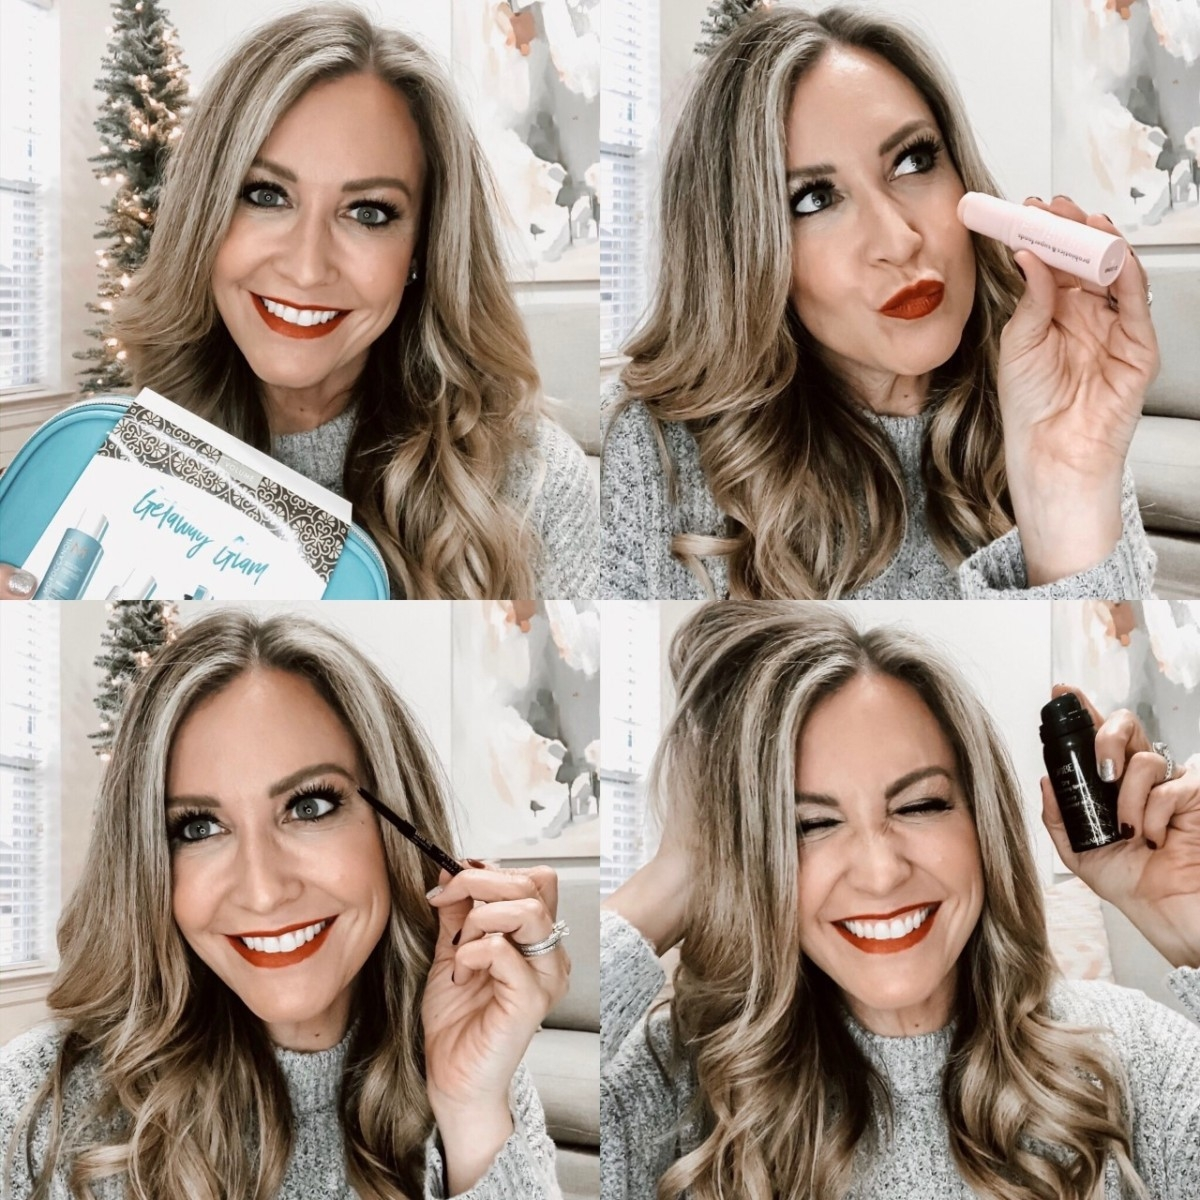 Gift Guide For The Beauty Lover | Beauty Gift Ideas: All Things Hair, Makeup And Skin by popular Houston beauty blog Haute and Humid: collage image of a woman holding her favorite beauty products.